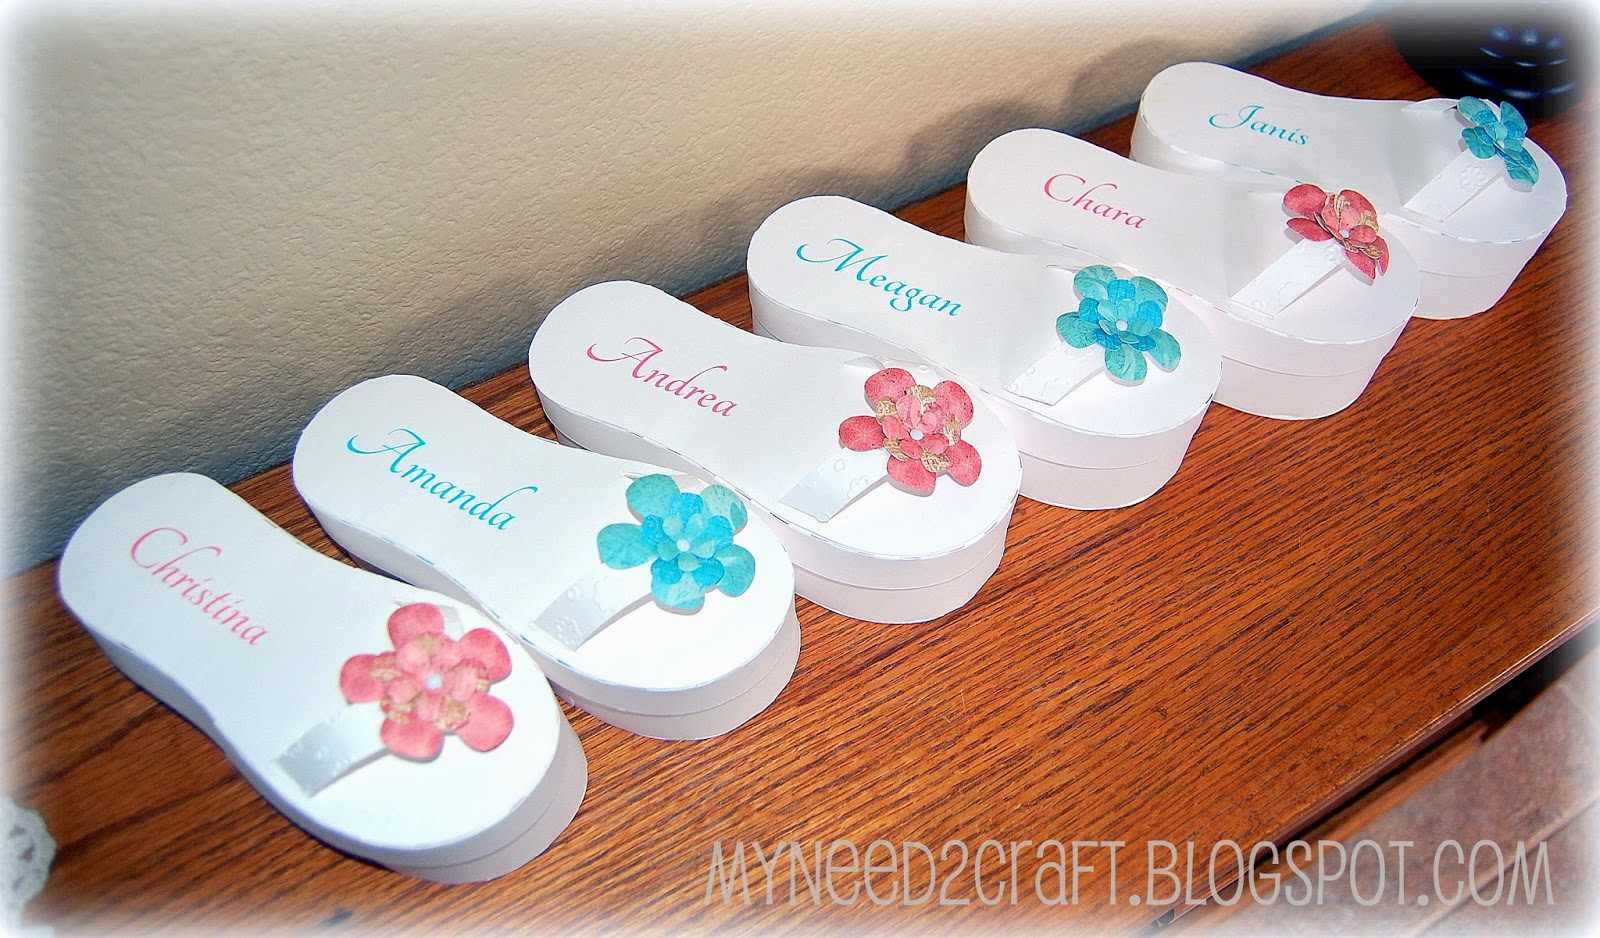 MyNeed2Craft by Terri Deavers Bridesmaid invites and flip flop boxes